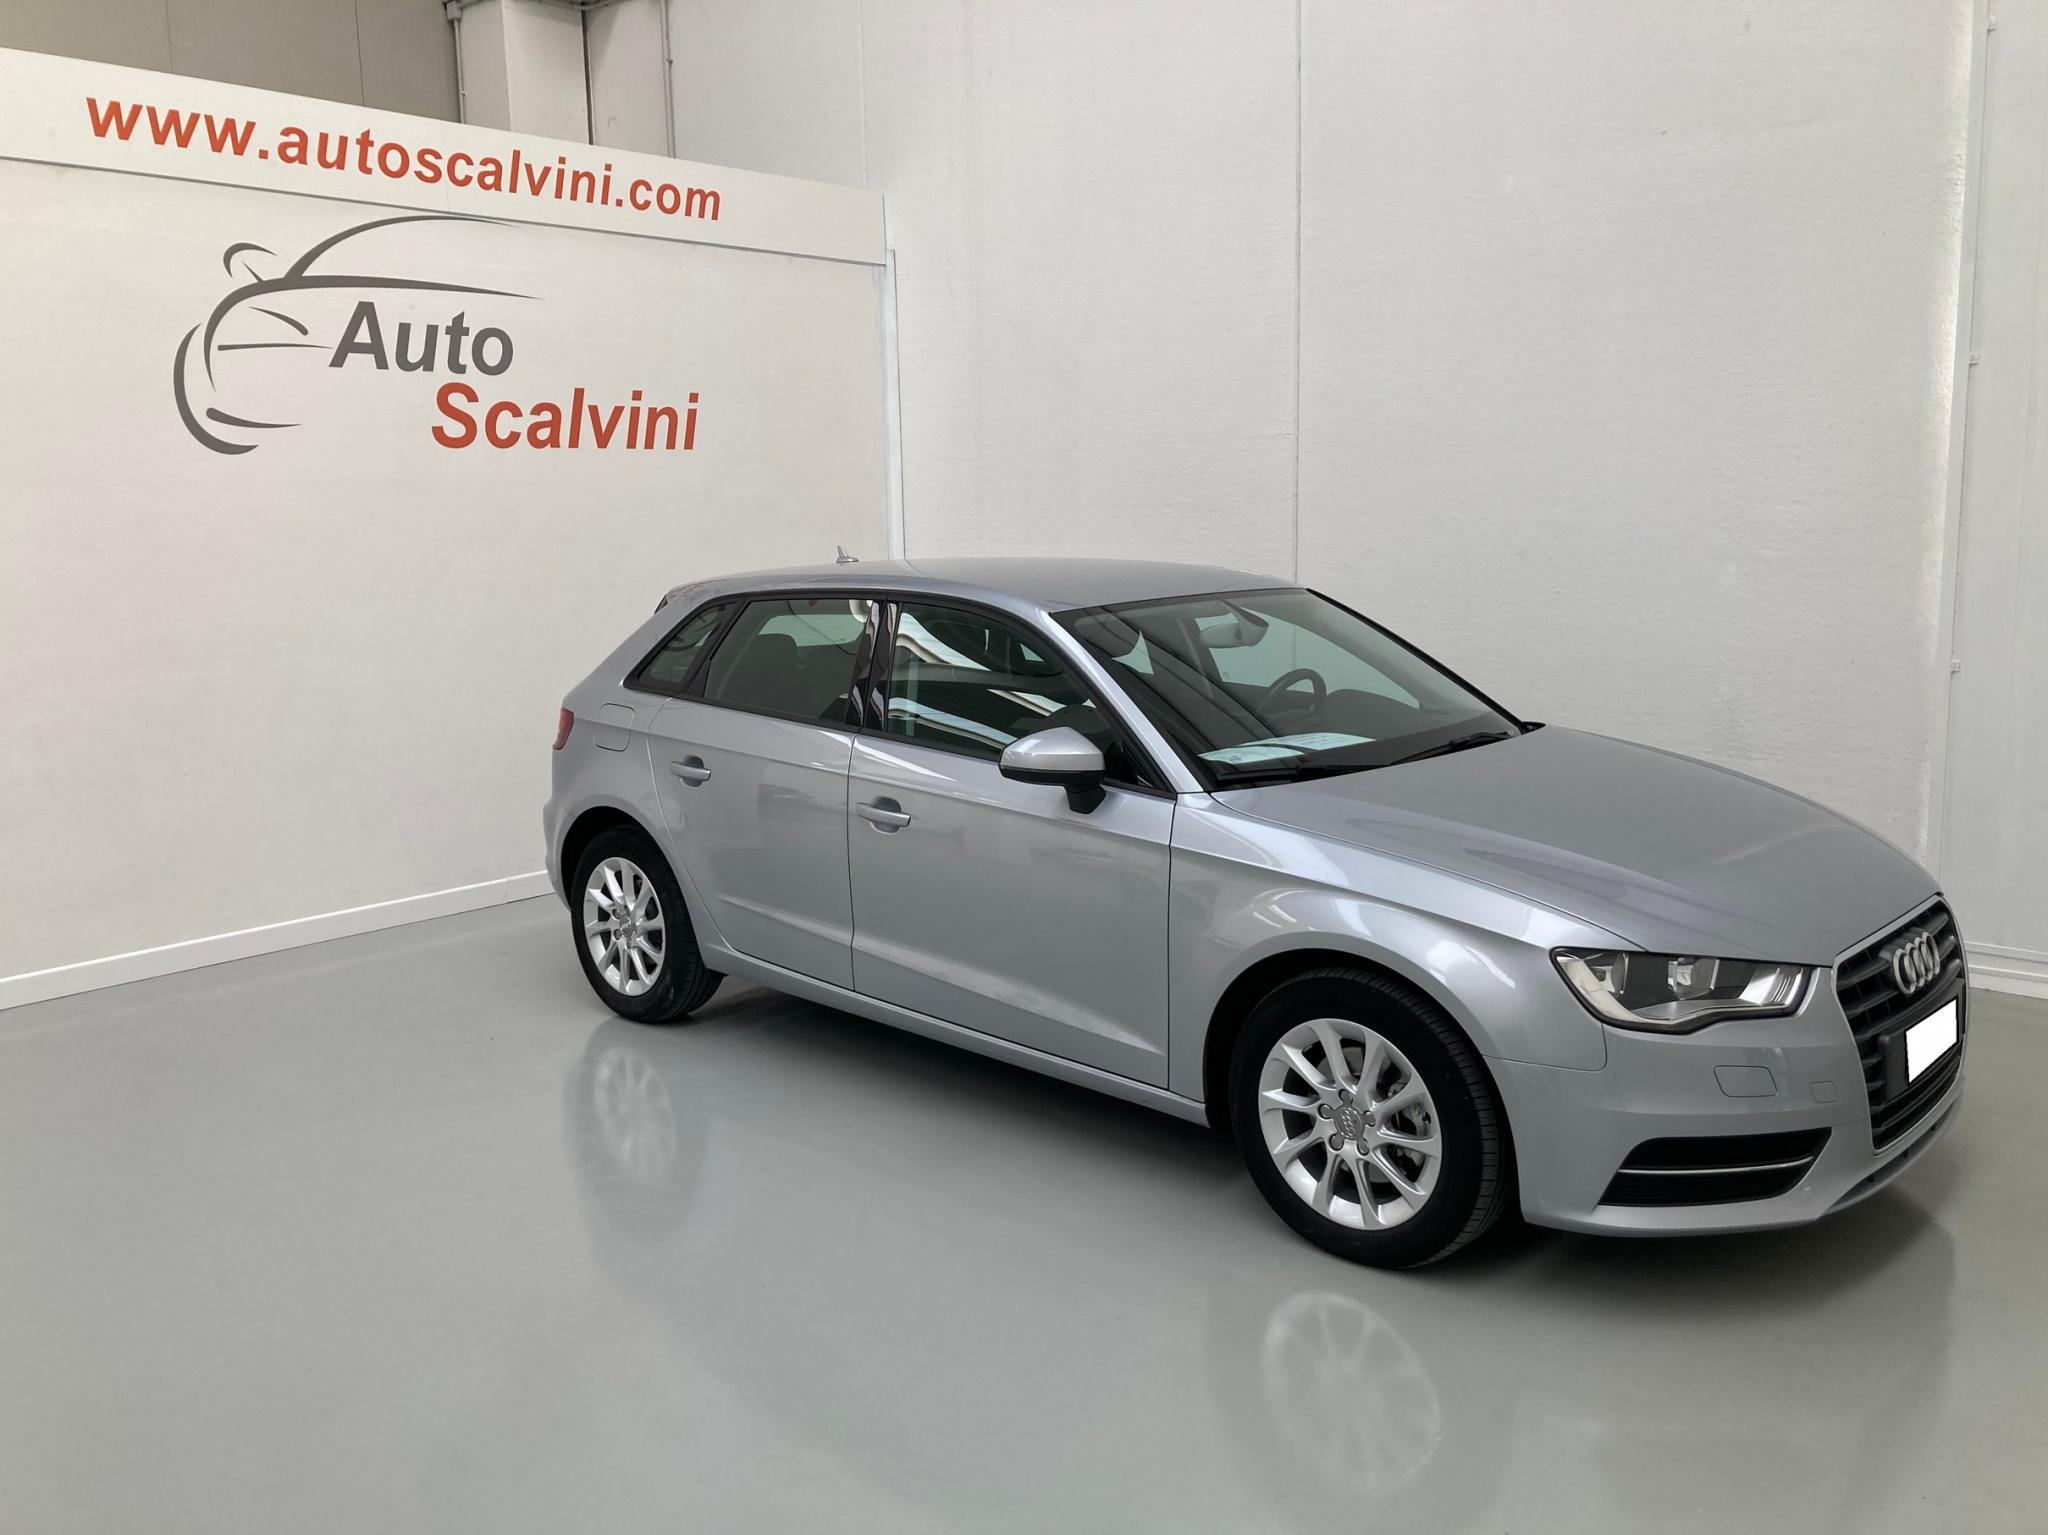 Audi A3 SPB 1.6 TDI clean diesel Attraction #1PROPRIETARIO #KM CERTIFICATI